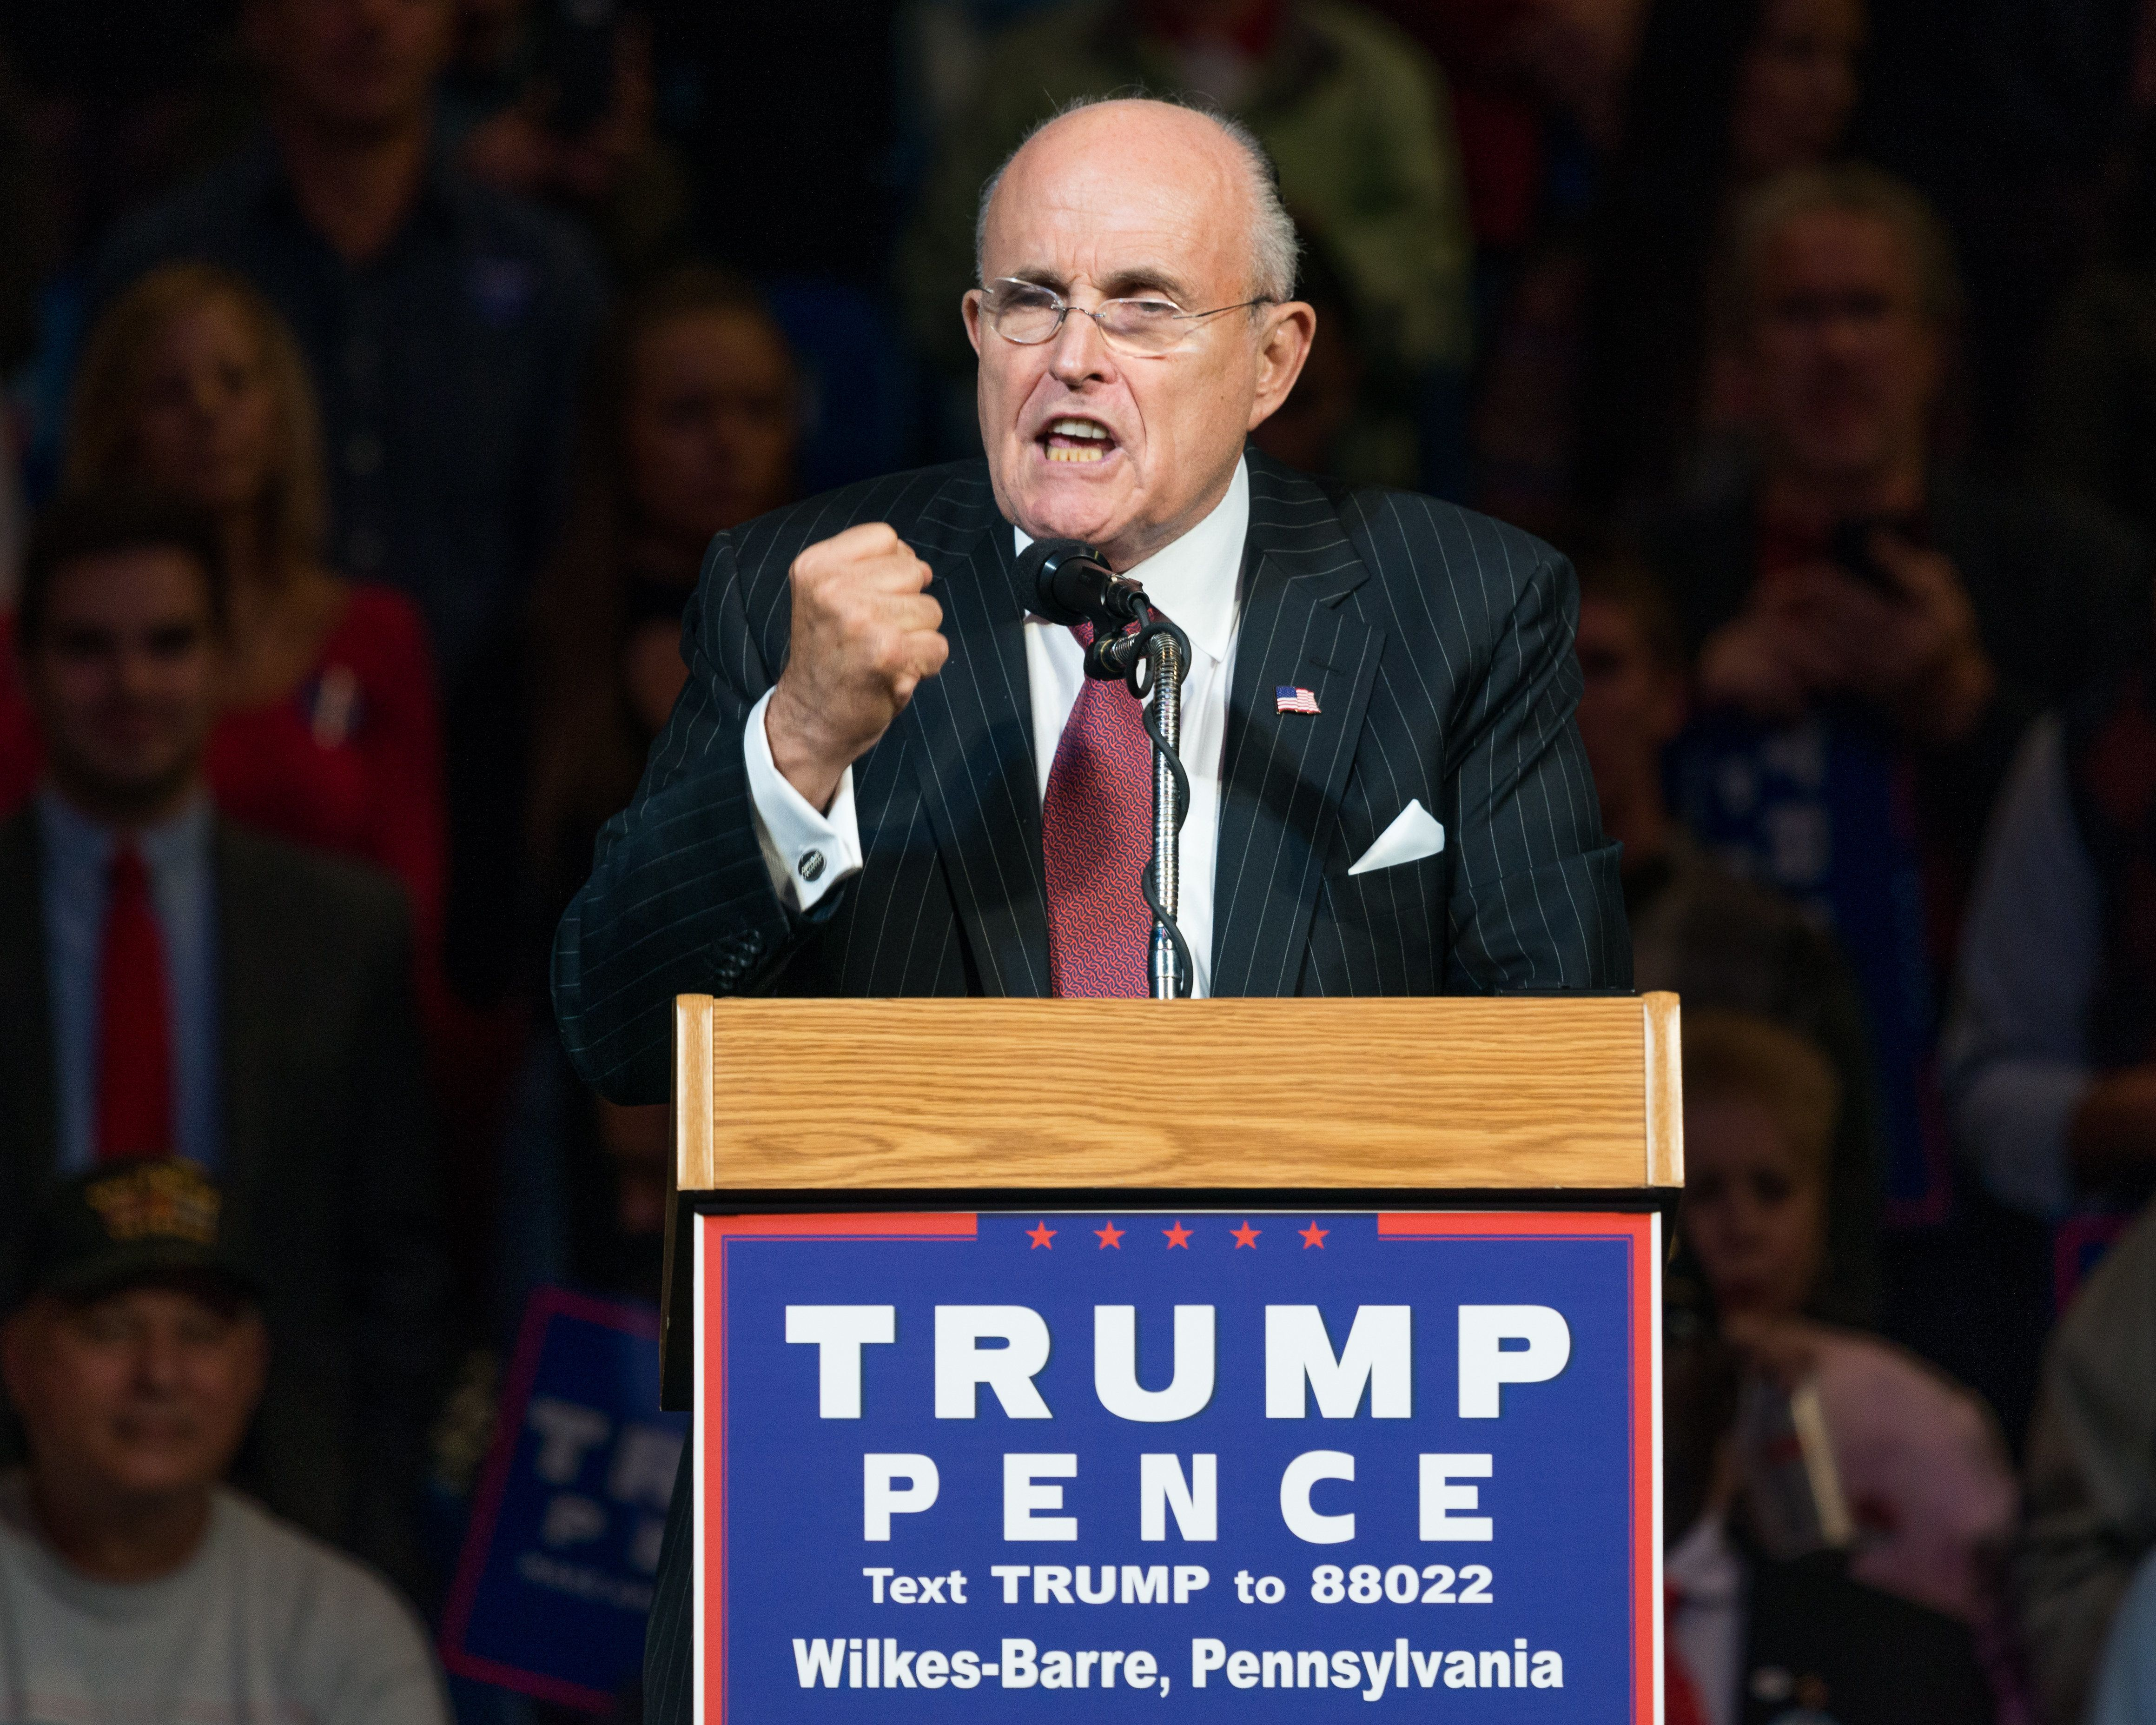 WILKES-BARRE, PA, UNITED STATES - 2016/10/10: Former New York City Mayor Rudy Giuliani campaigning for Donald Trump at the Mohegan Sun Arena in Wilkes-Barre. (Photo by Michael Brochstein/SOPA Images/LightRocket via Getty Images)